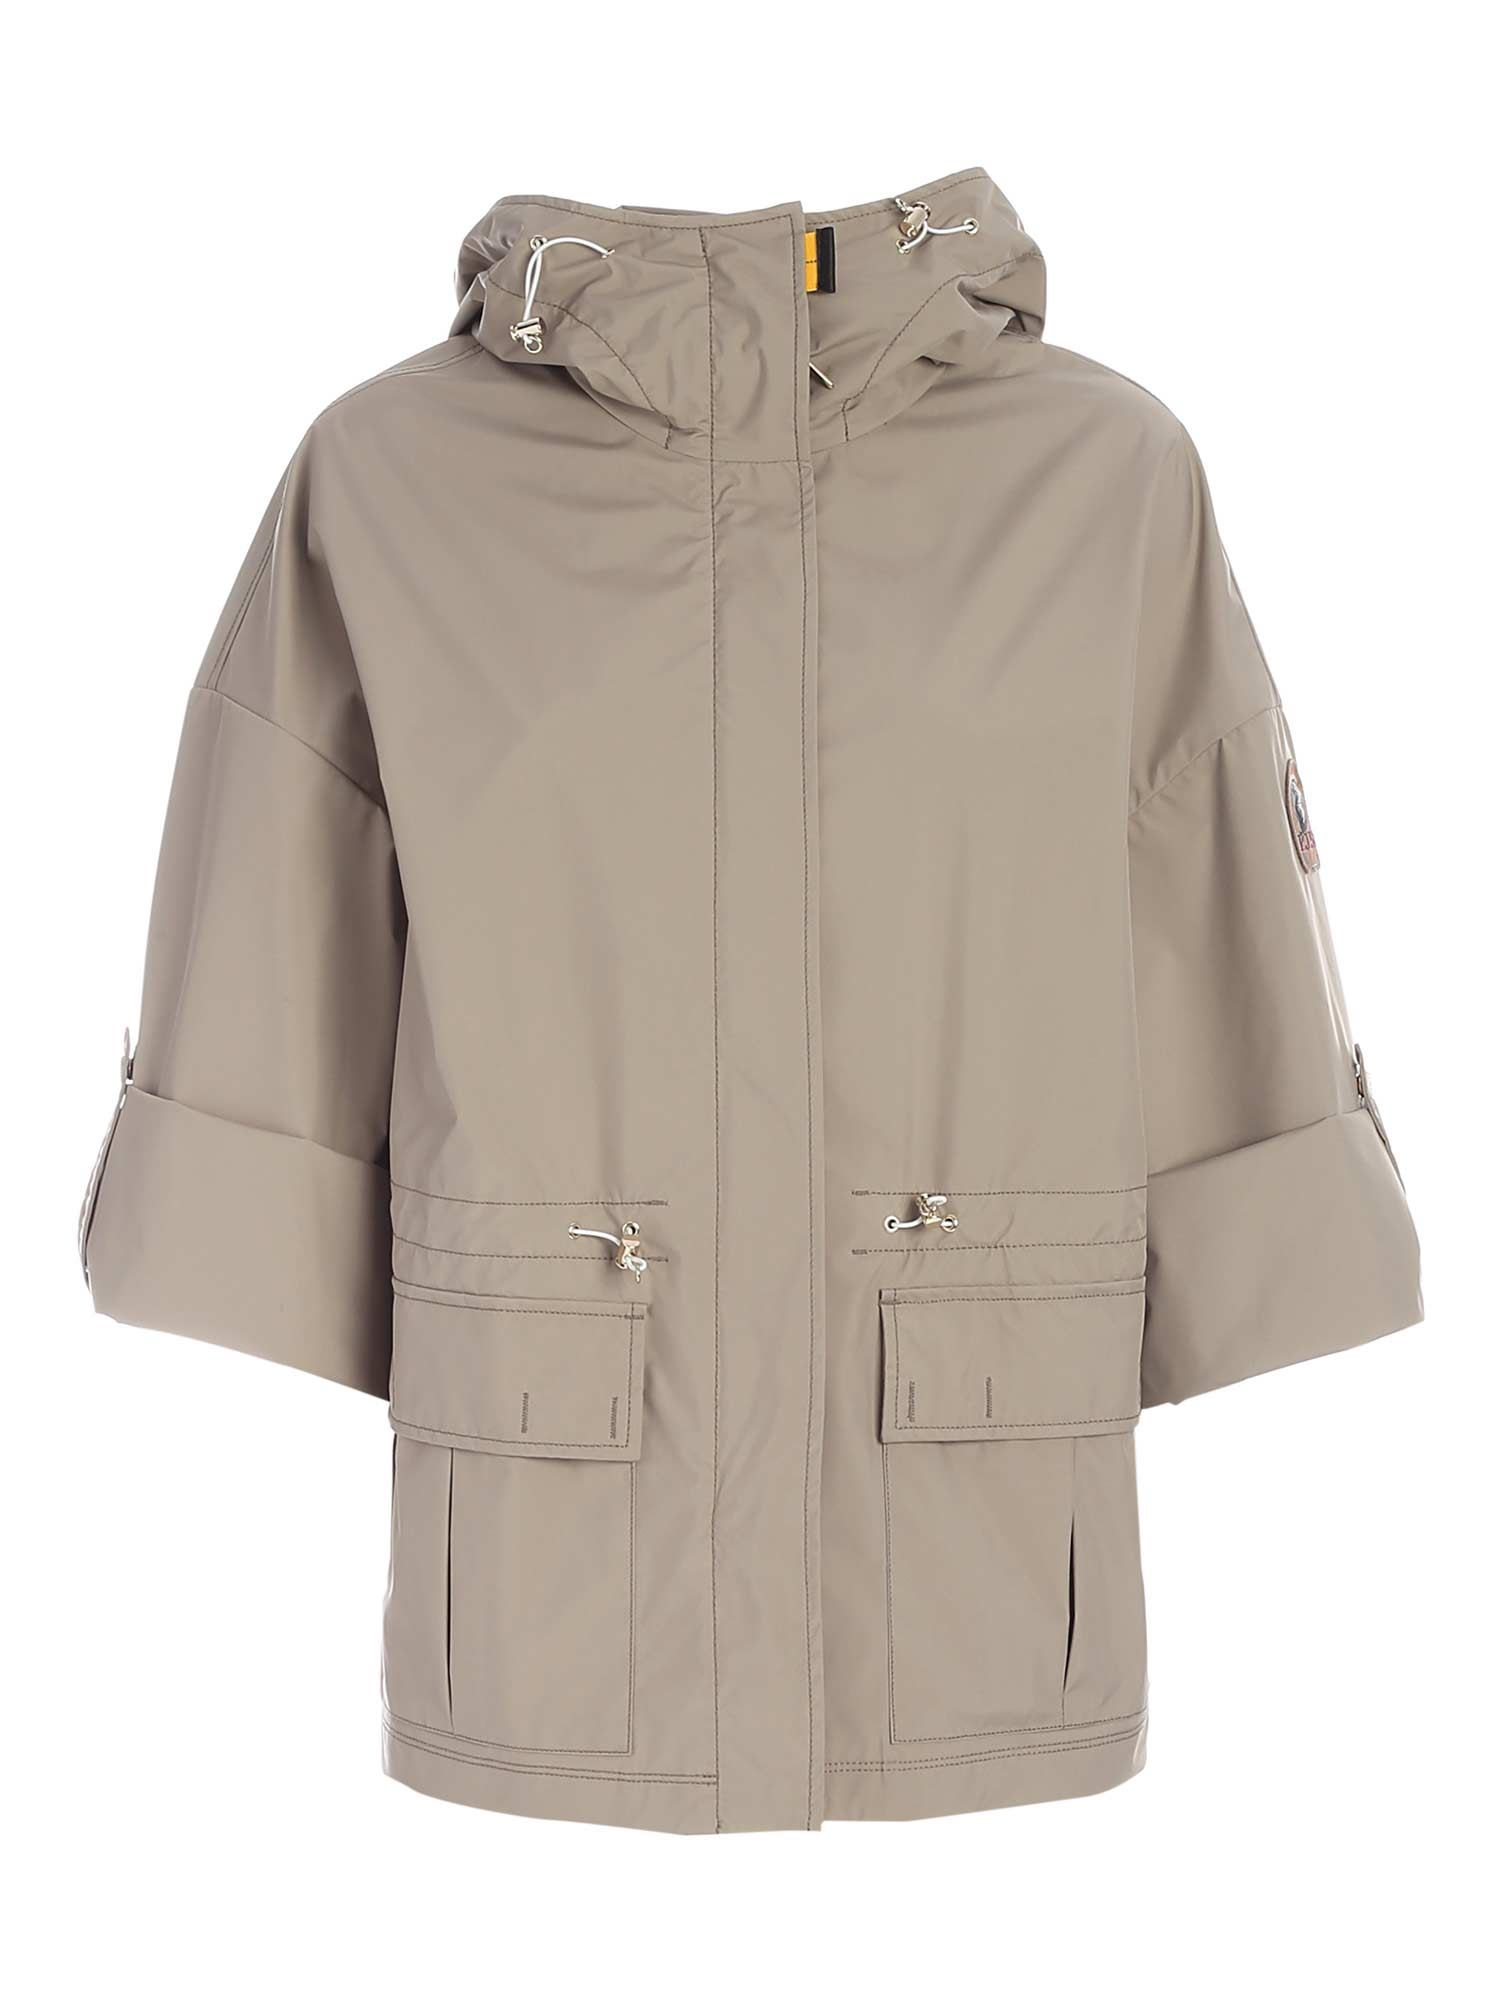 Parajumpers Linings HAILEE WATERPROOF JACKET IN GREY